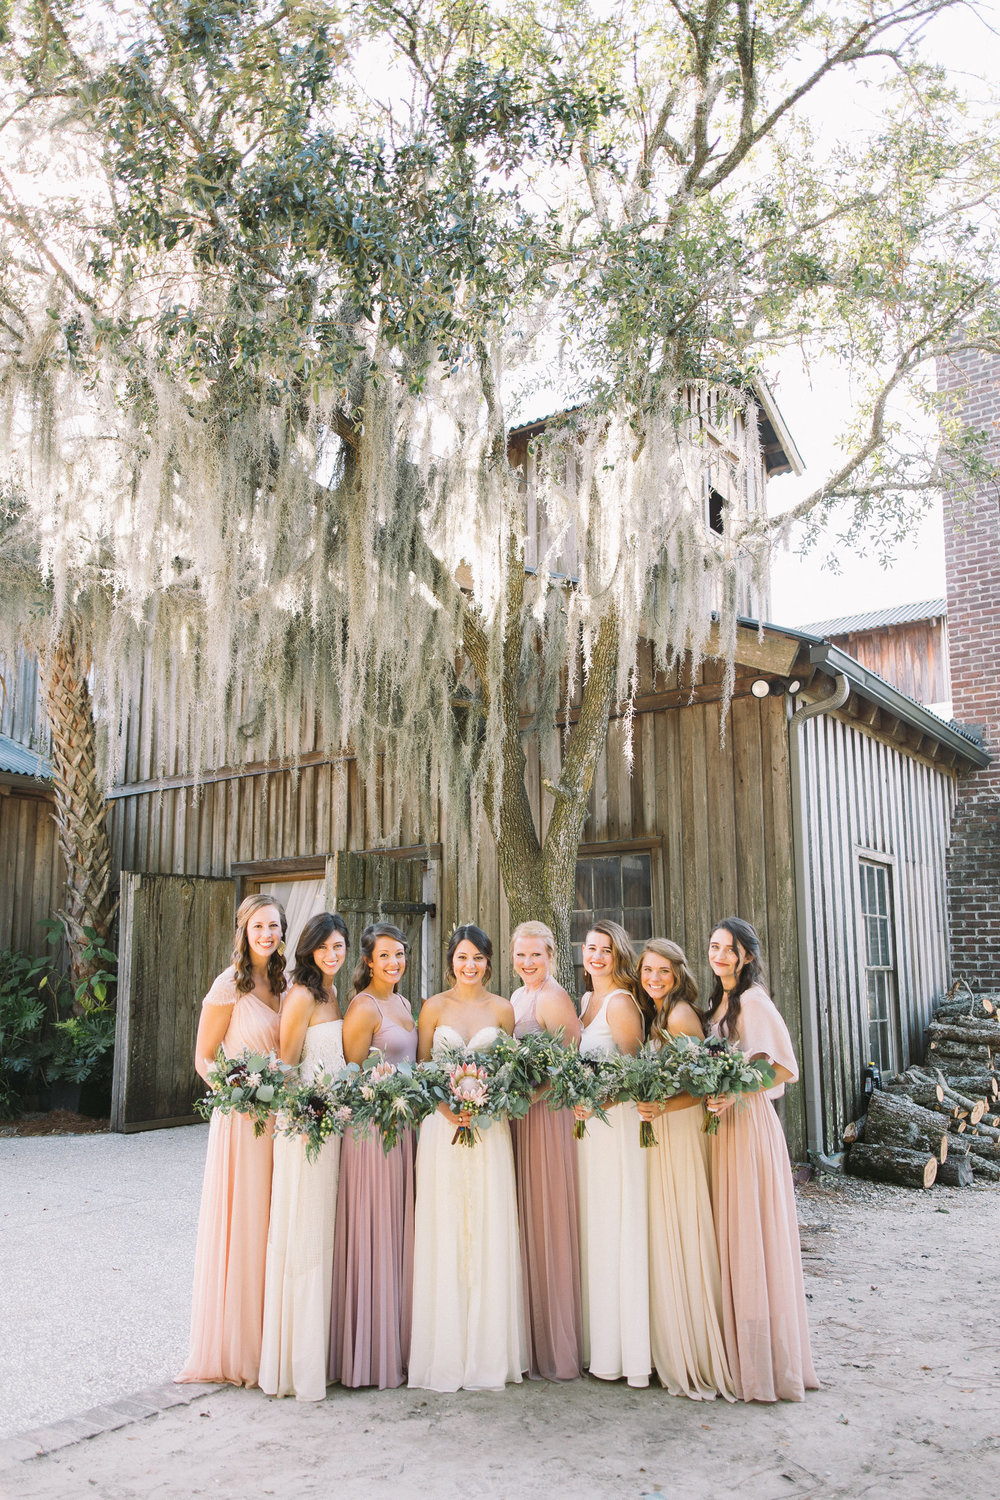 falyn-sy-branches-wedding-co-boone-hall-plantation-wedding-charleston-wedding-cotton-dock-wedding-sarah-seven-cascade-ivory-and-beau-bridal-boutique-savannah-wedding-dresses-savannah-bridal-gowns-charleston-weddings-6.jpg